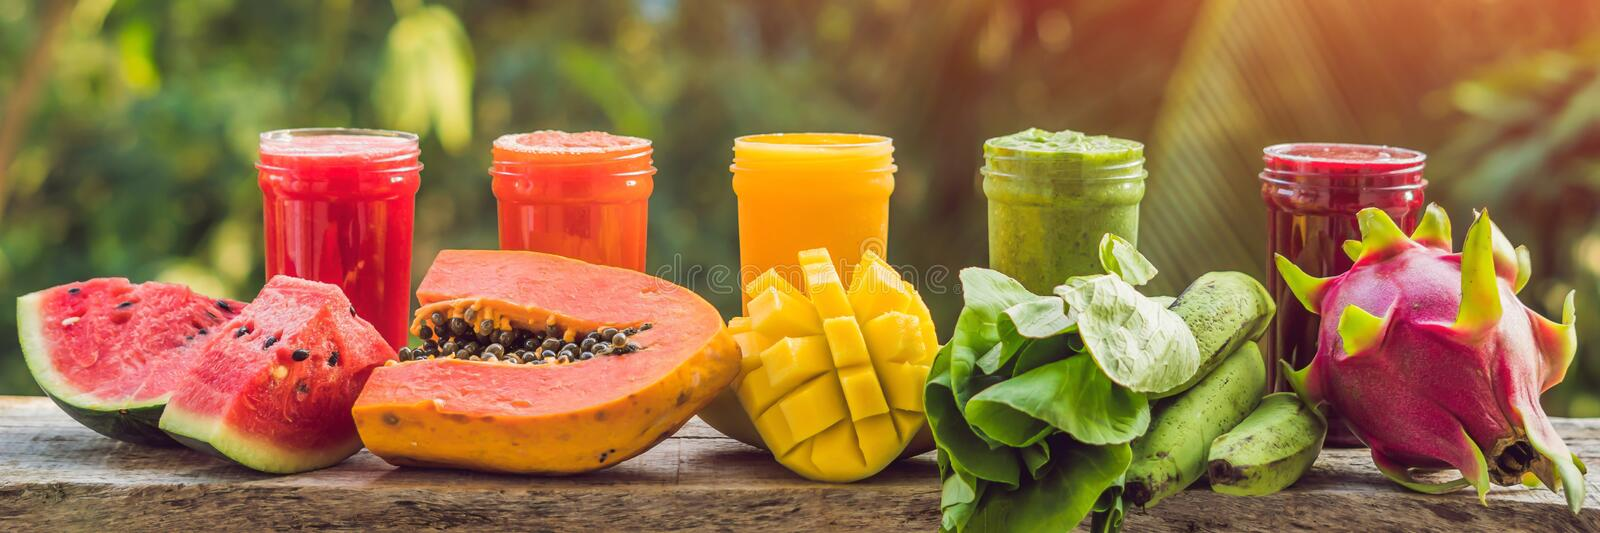 Rainbow from smoothies. Watermelon, papaya, mango, spinach and dragon fruit. Smoothies, juices, beverages, drinks stock photography